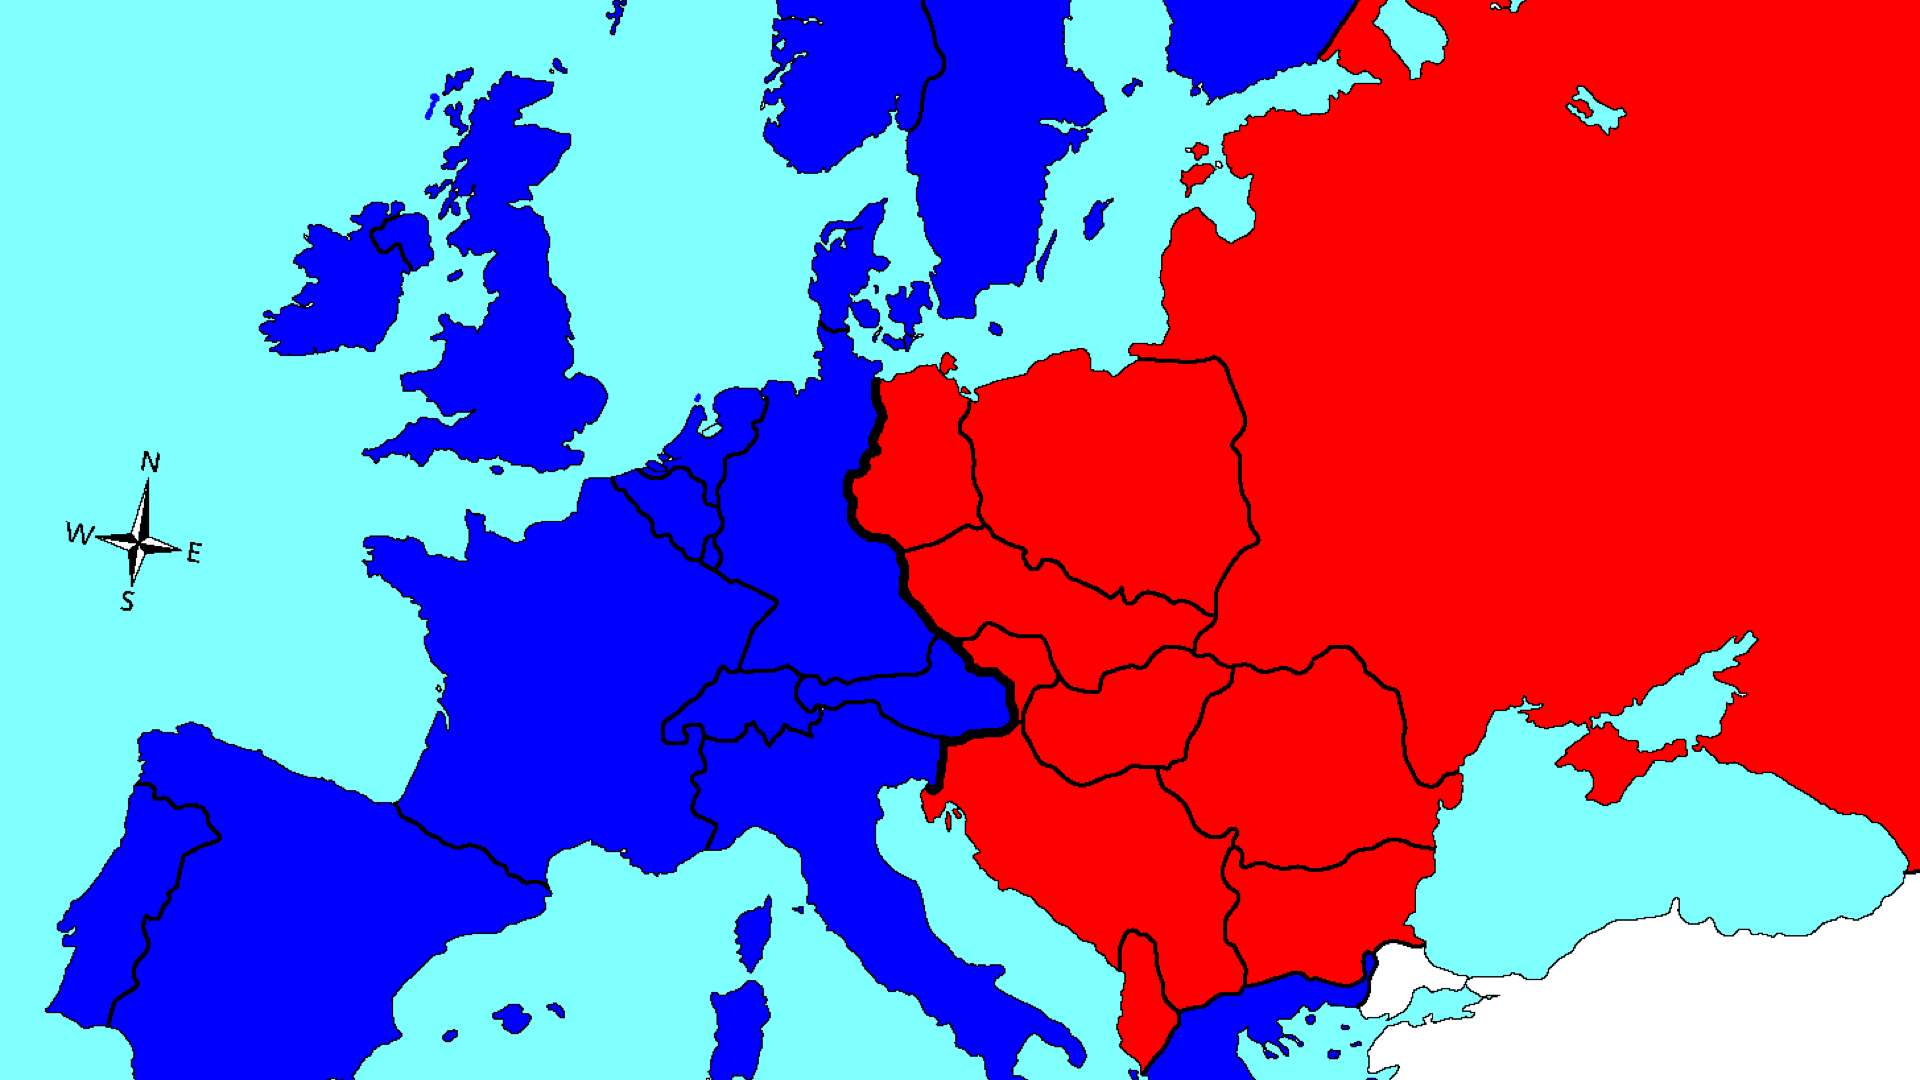 a history of the iron curtain of europe Frontis the approximate location of the iron curtain is shown on a map of western and eastern europe chelsea house publishers vp, new product development sally cheney director of production kim shinners.